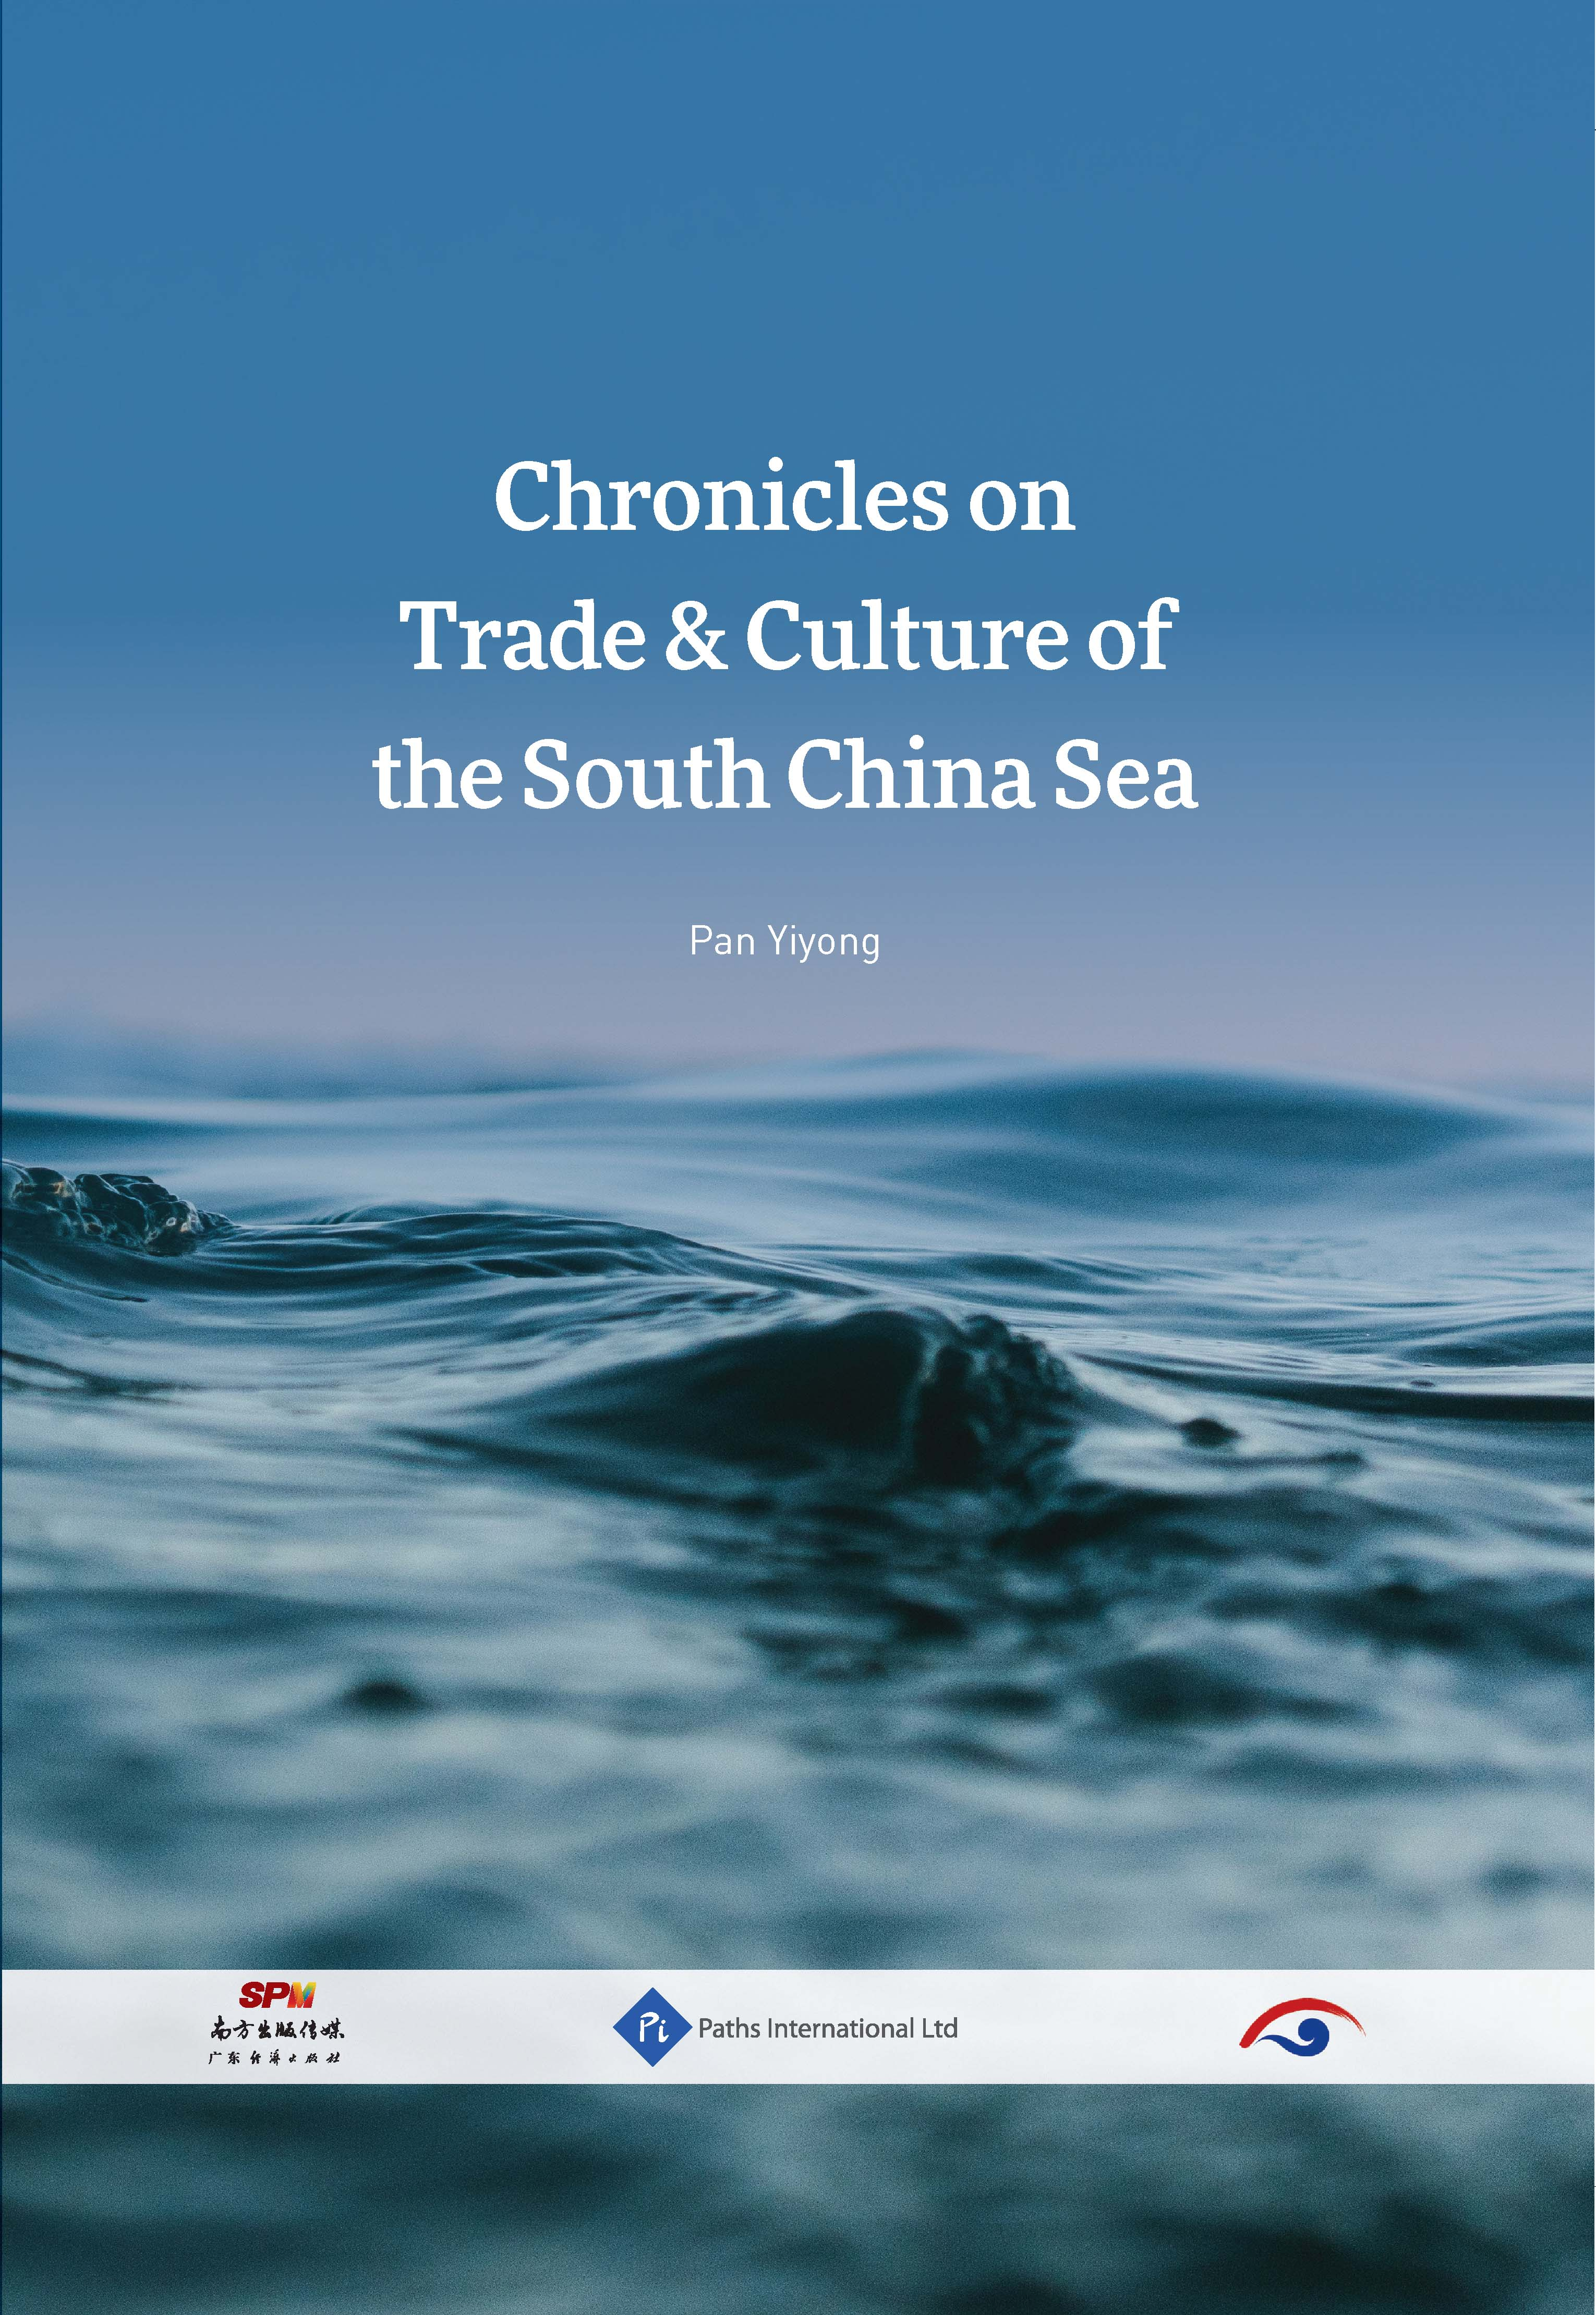 Chronicles on Trade & Culture of the South China Sea | Paths